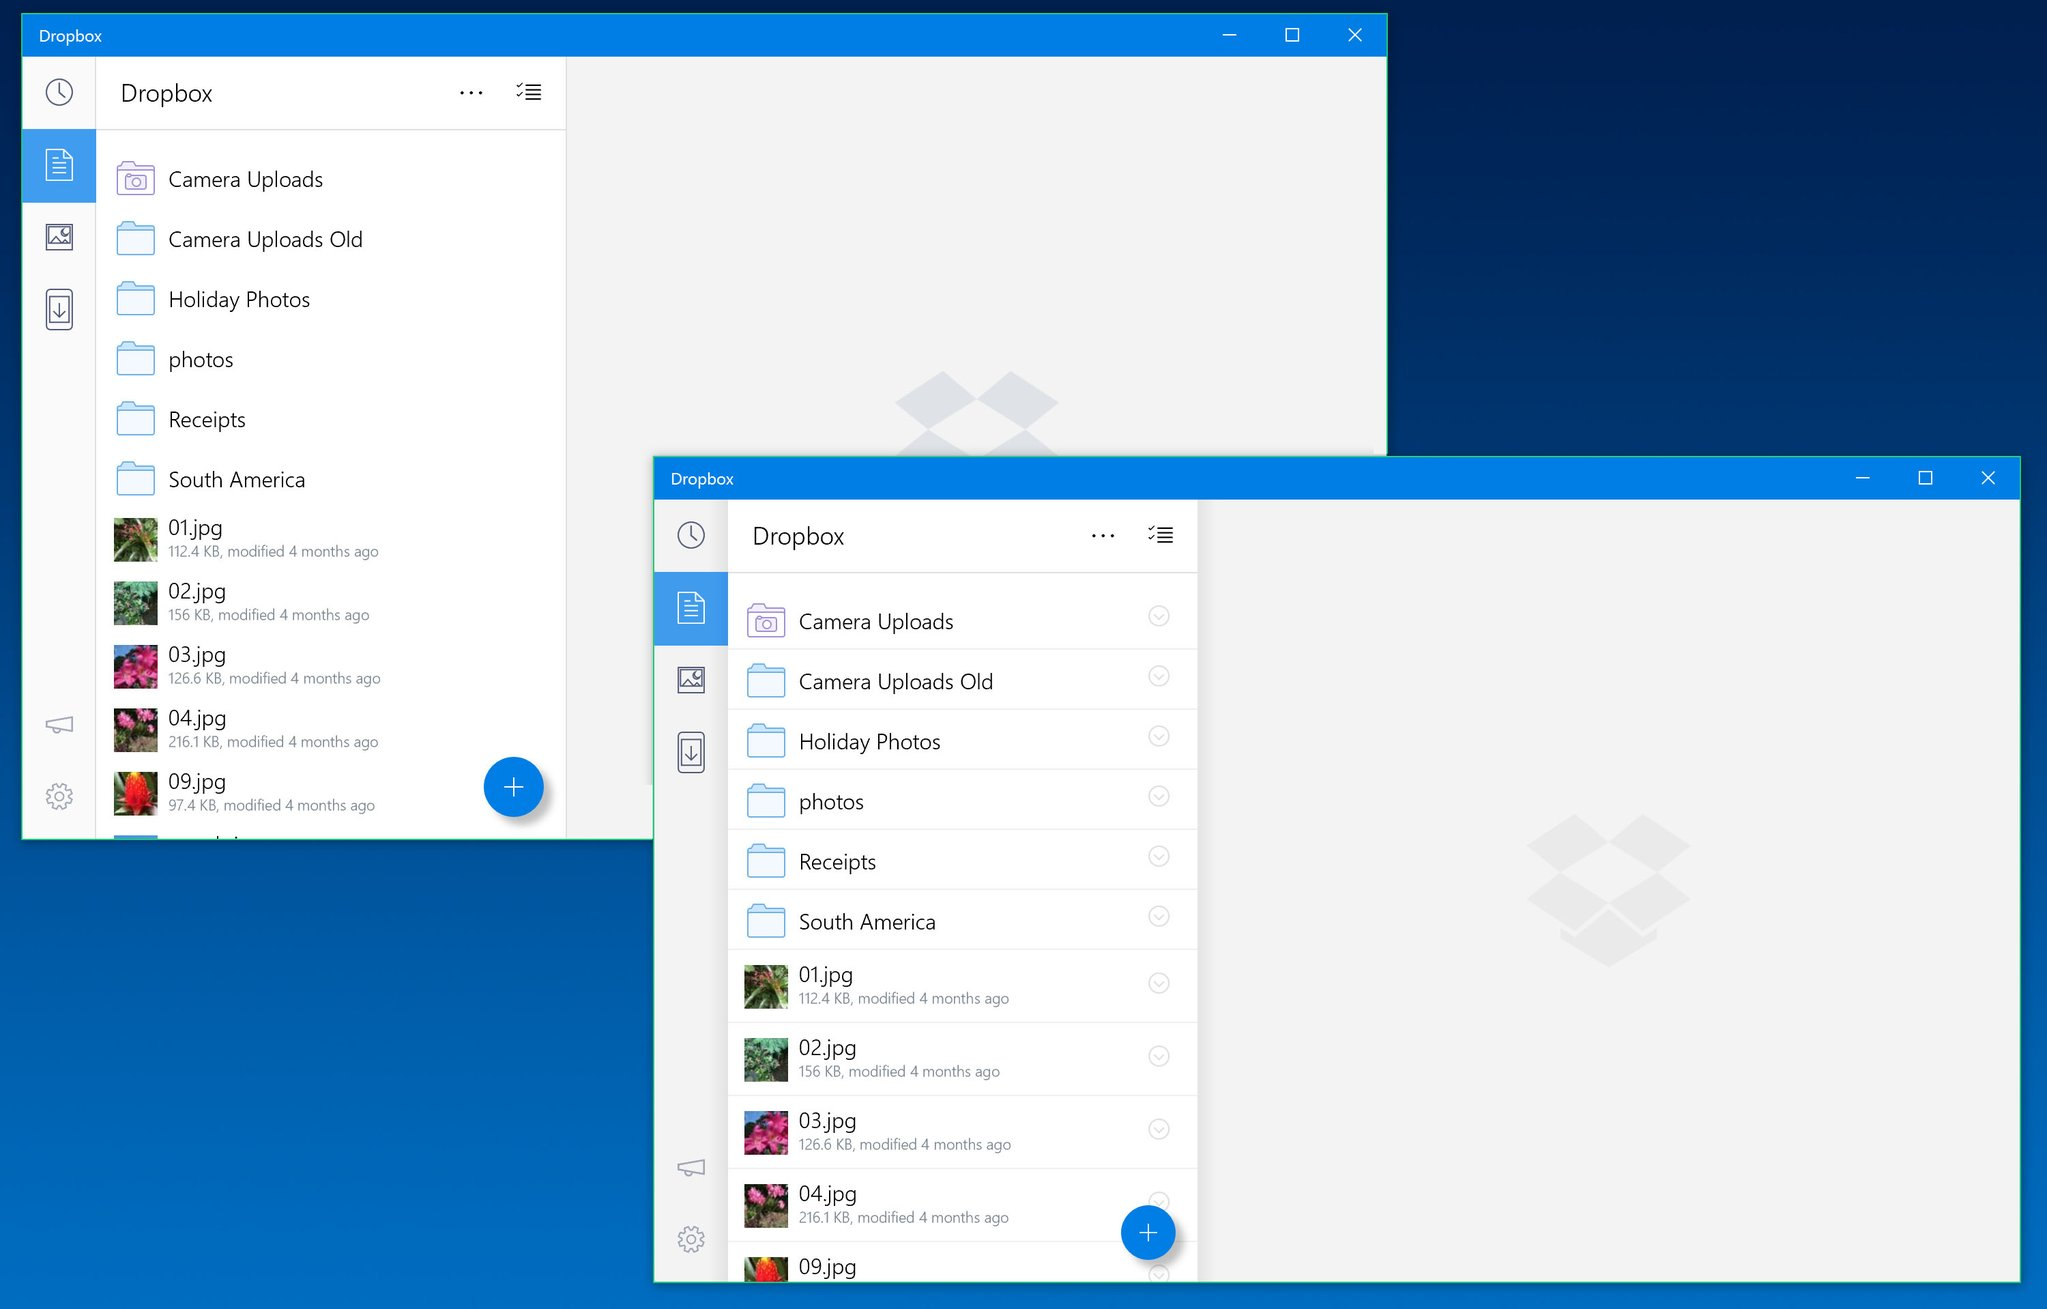 Dropbox for Windows 10 updated with a new design and the ability to set an image as wallpaper ...